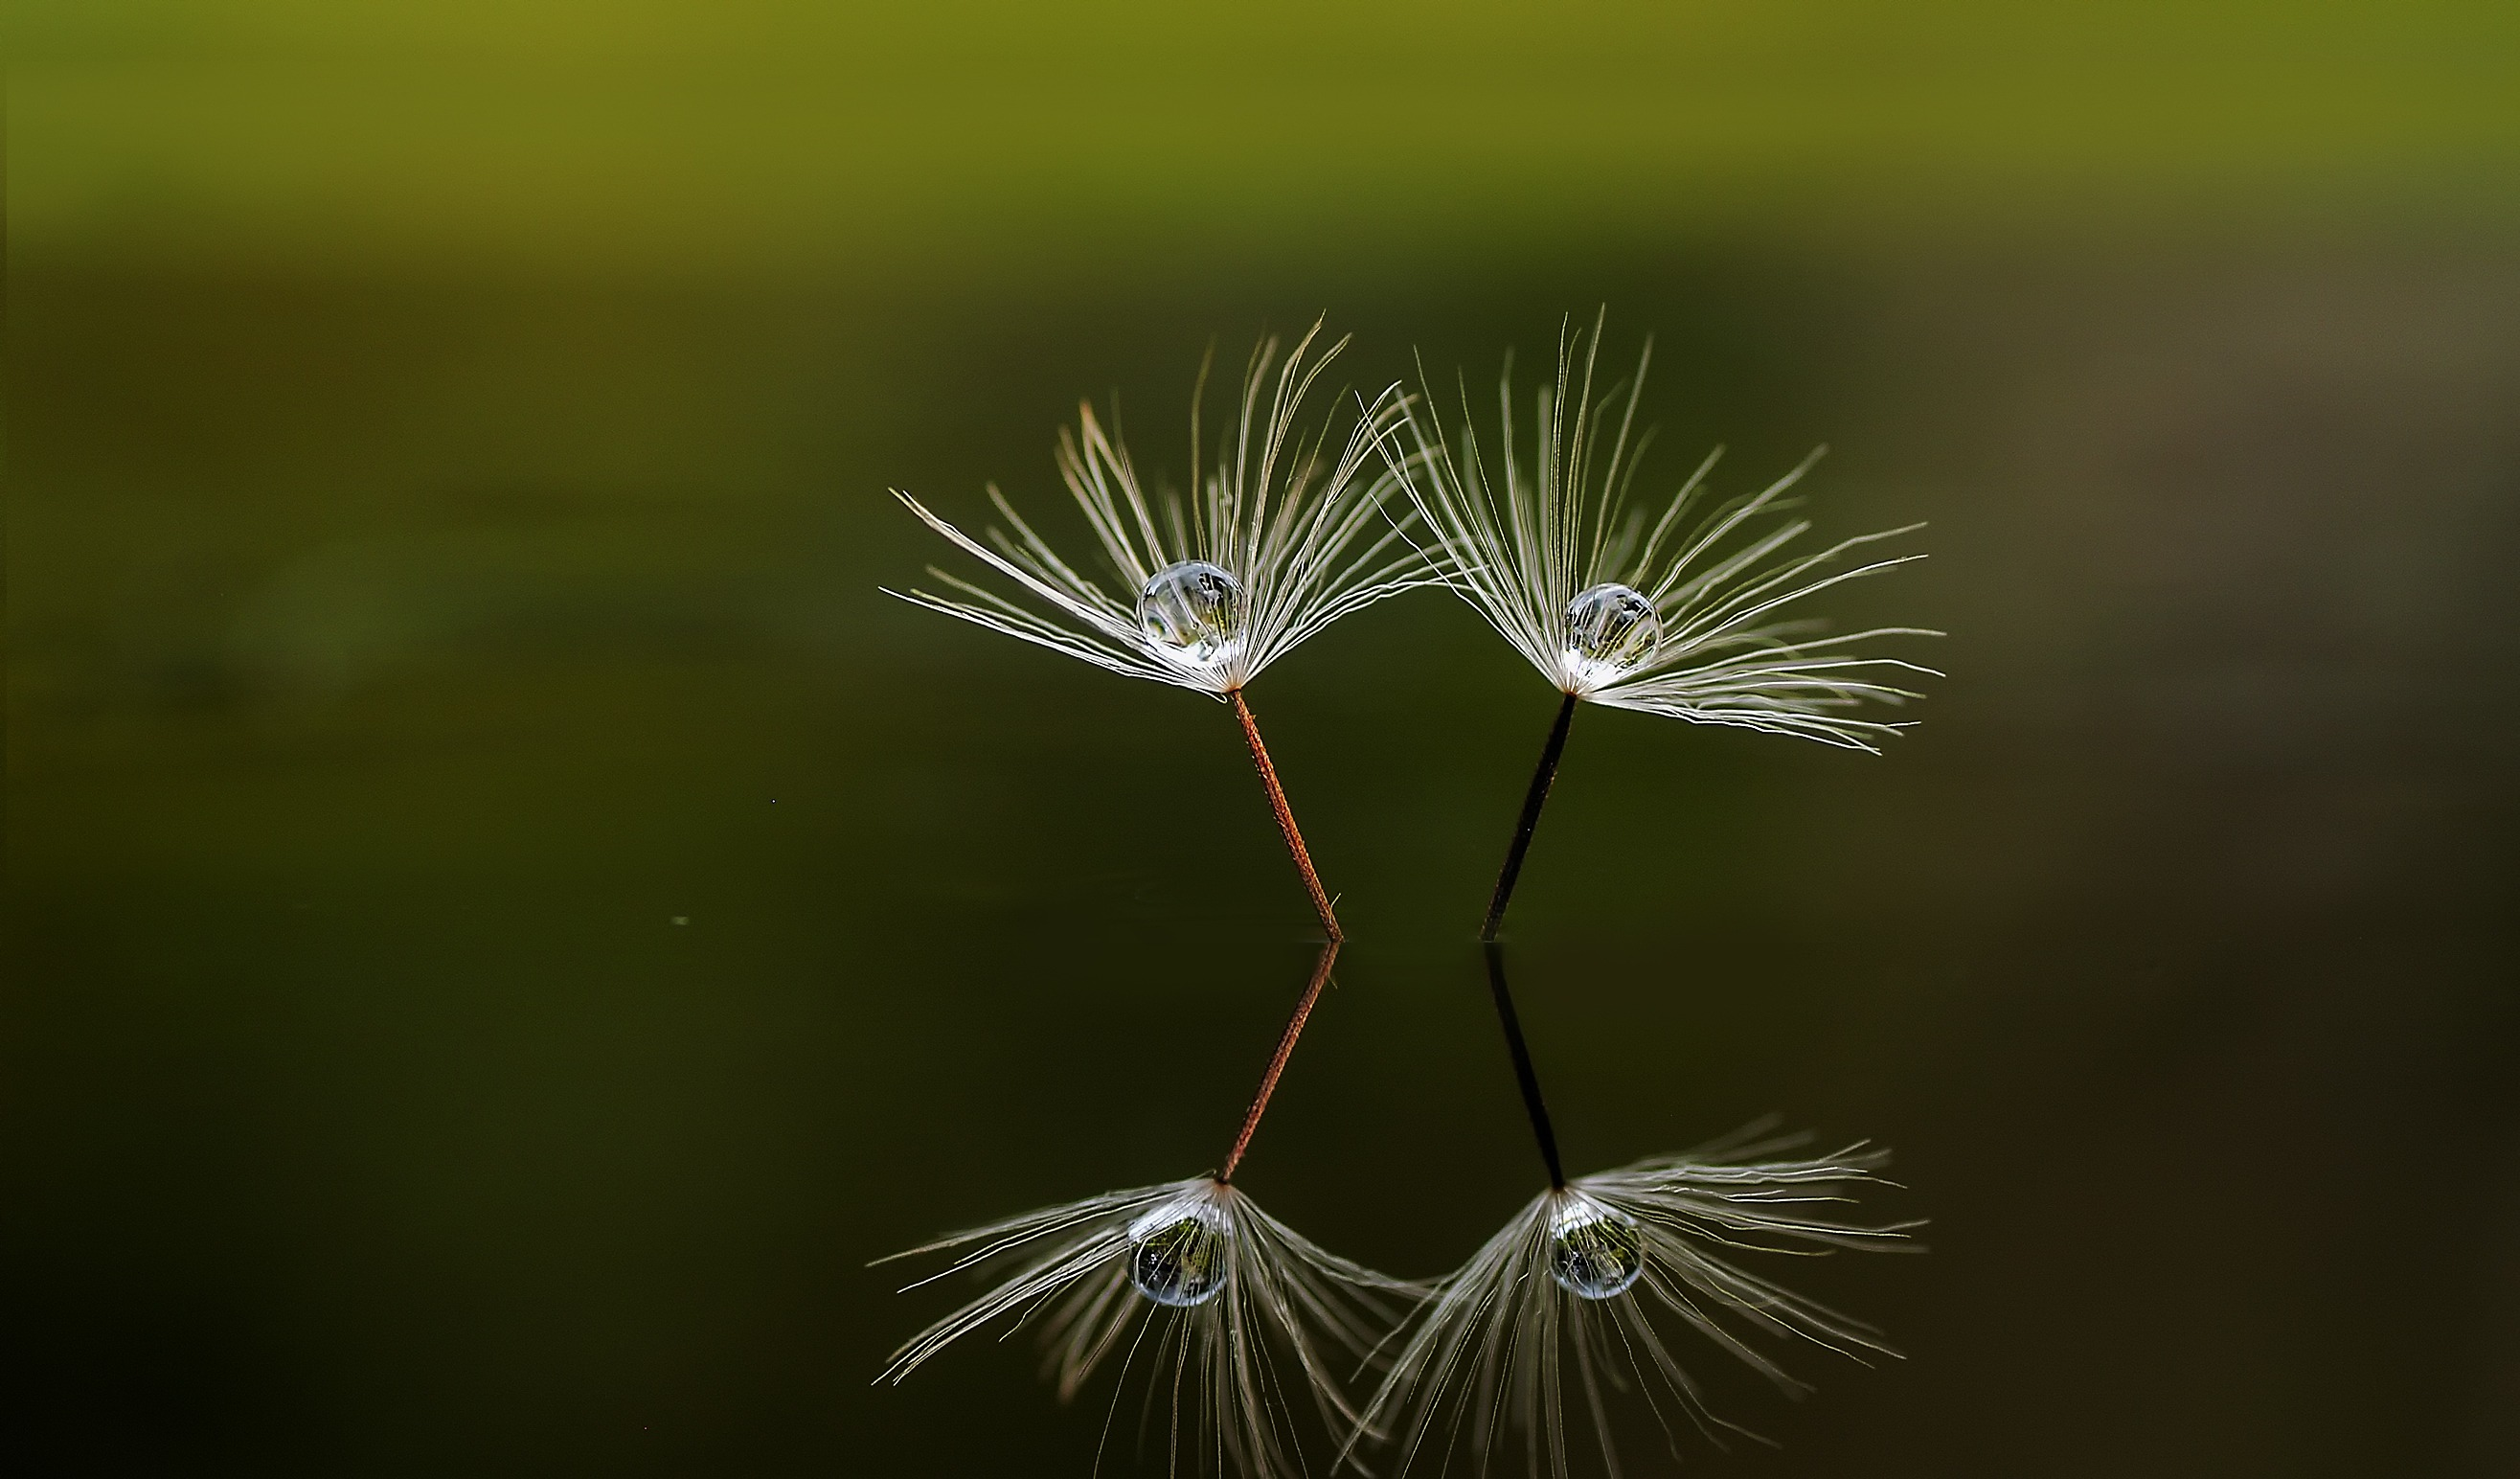 148247 free wallpaper 1080x2340 for phone, download images Drops, Reflection, Macro, Dandelion, Fluff, Fuzz 1080x2340 for mobile